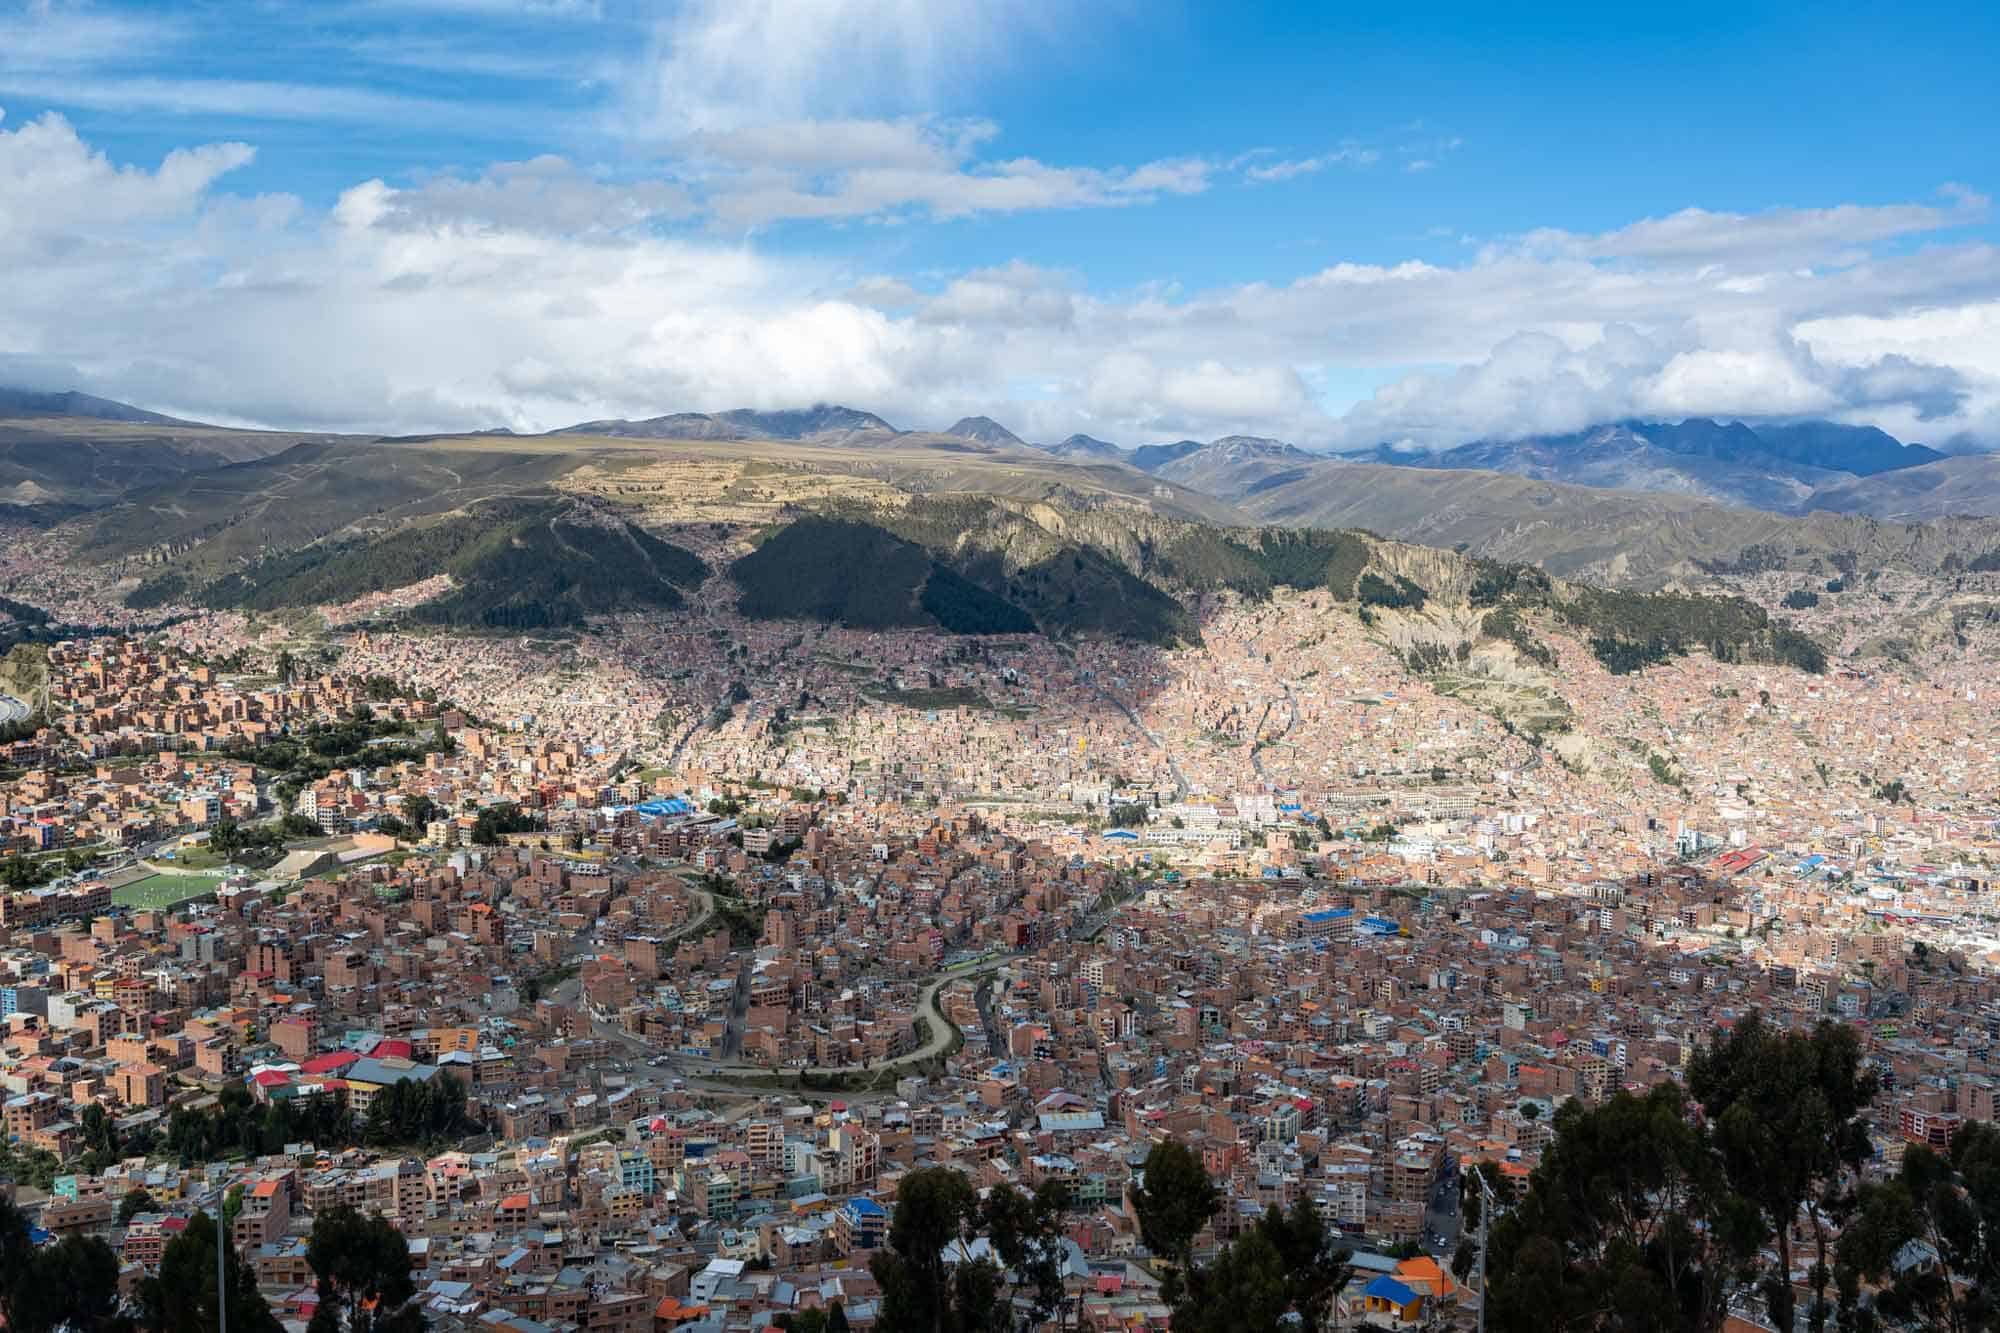 Things To Do In La Paz, Bolivia